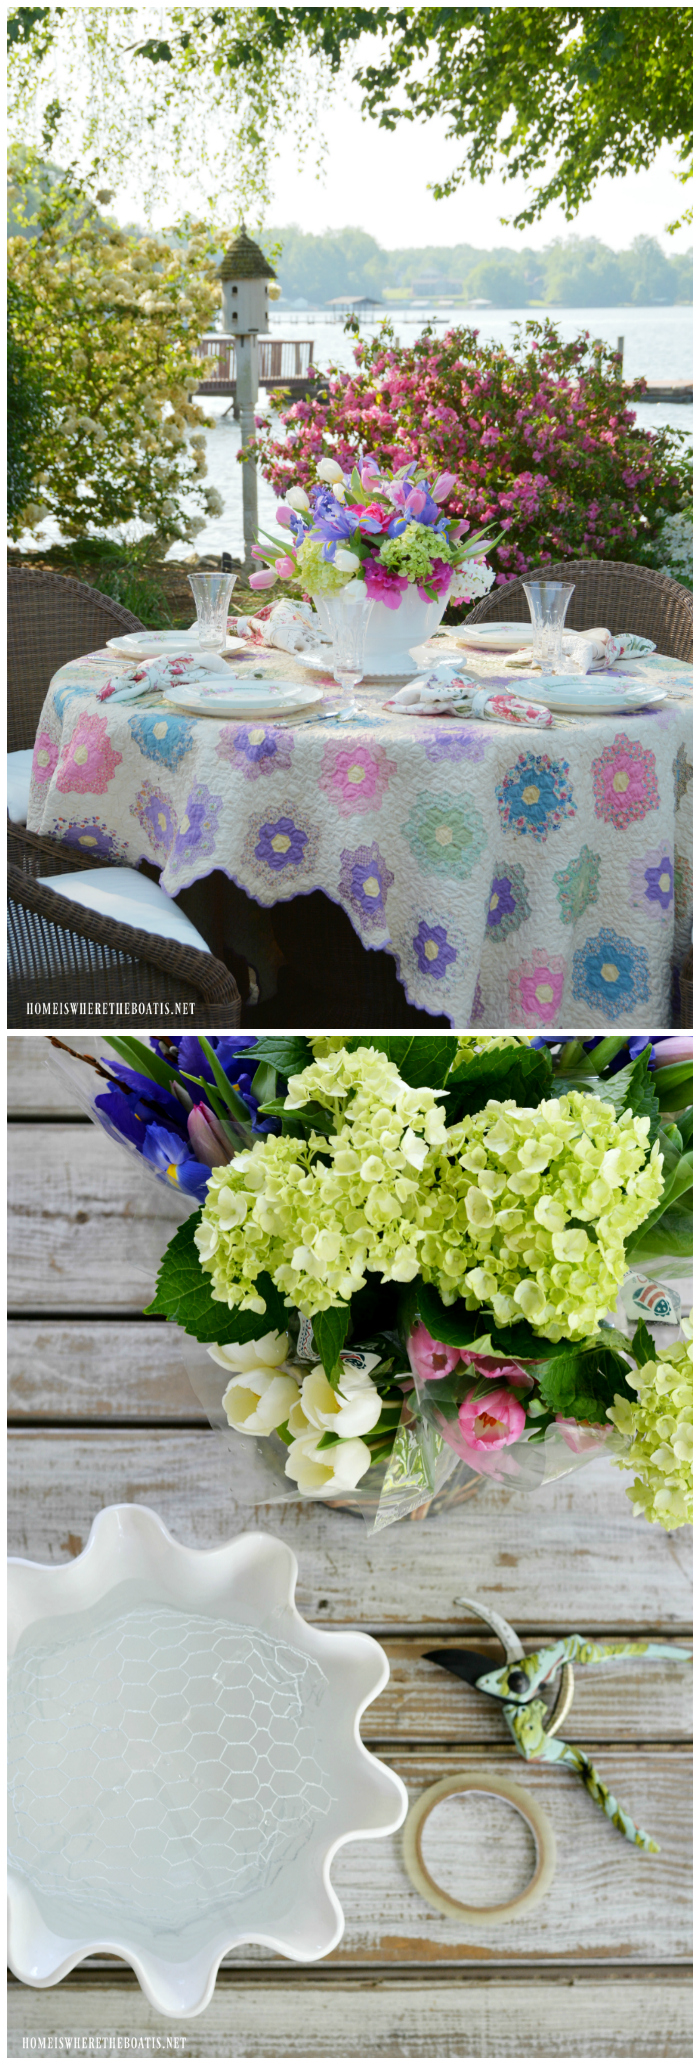 Flower Arrangement with Chicken Wire for Mother's | ©homeiswheretheboatis.net #flowers #garden #alfresco #mothersday #tablescapes